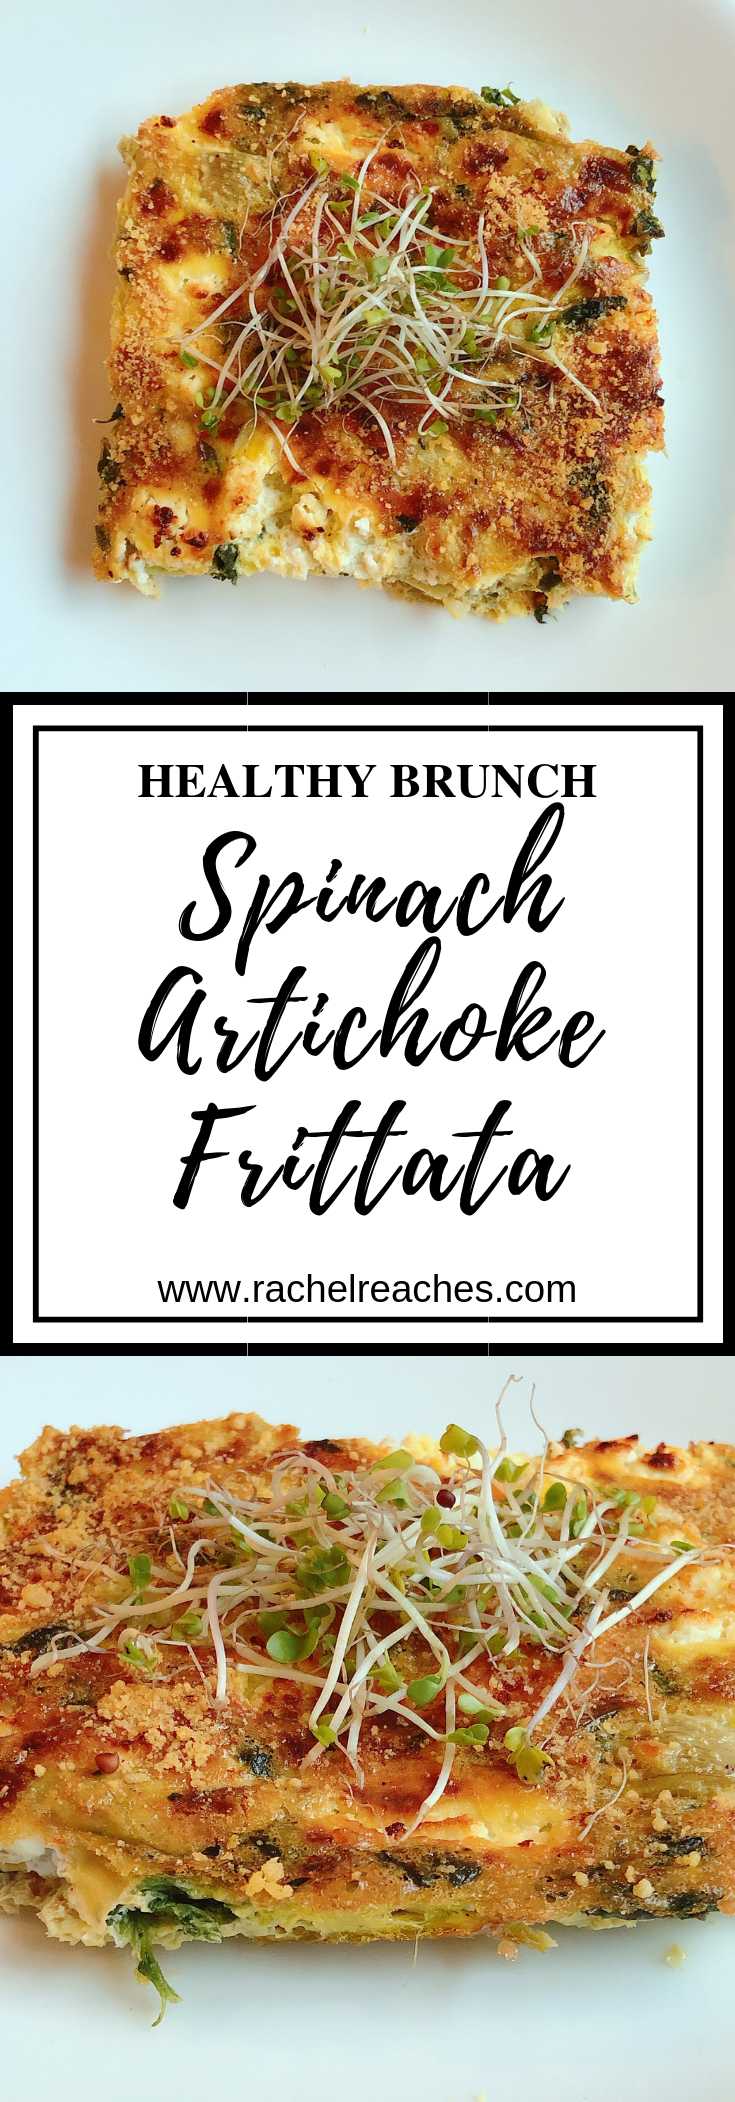 Spinach Artichoke Frittata - Healthy Eating.png